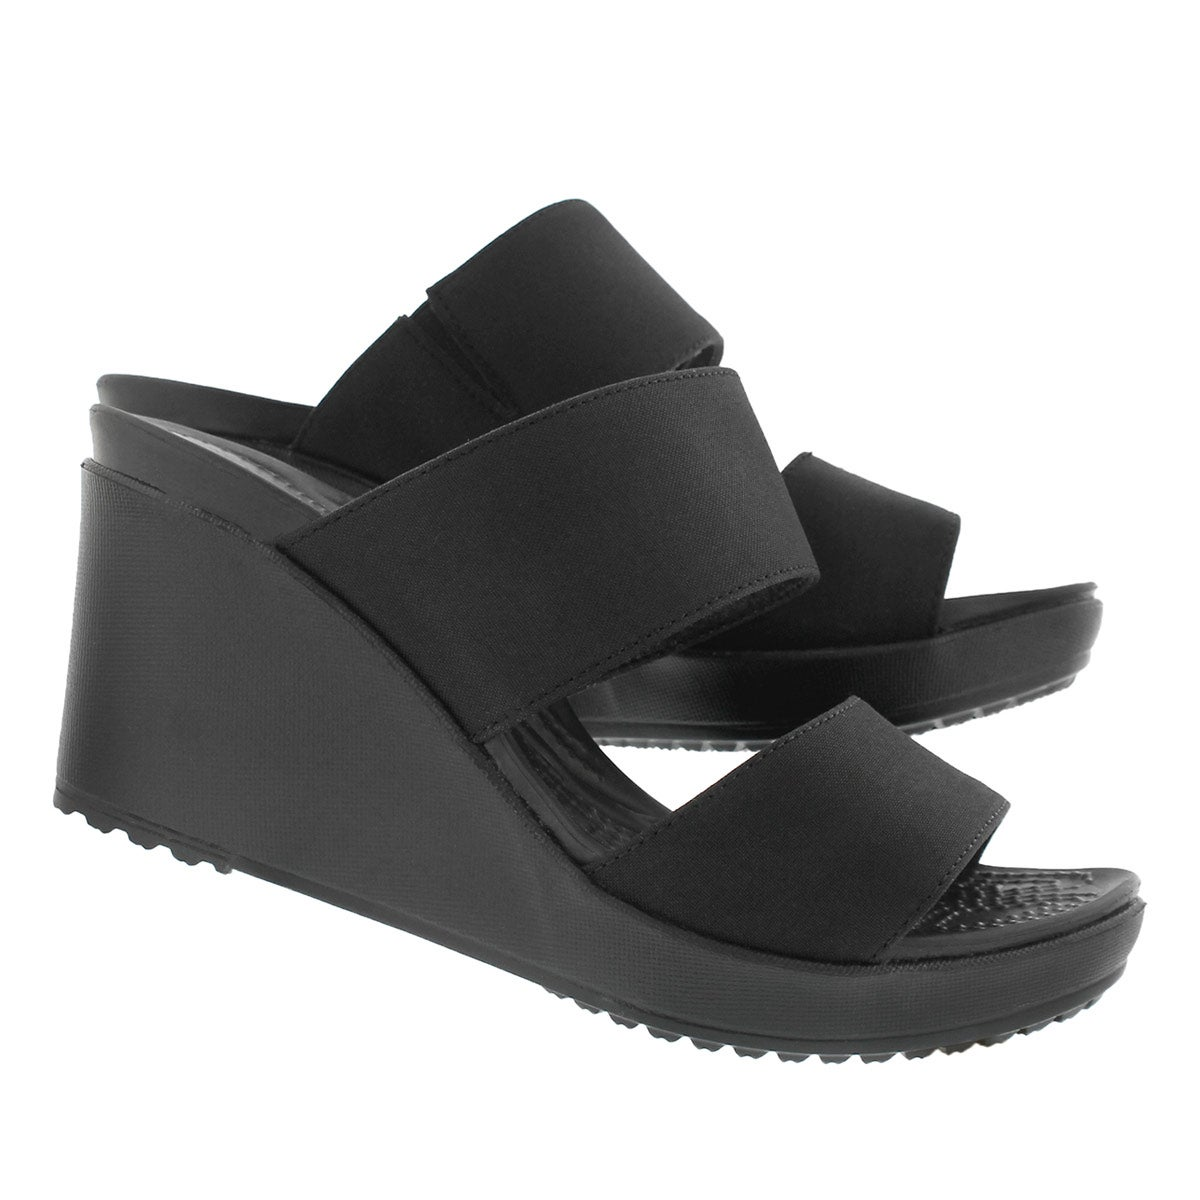 Lds Leigh II 2-Strap black wedge sandal